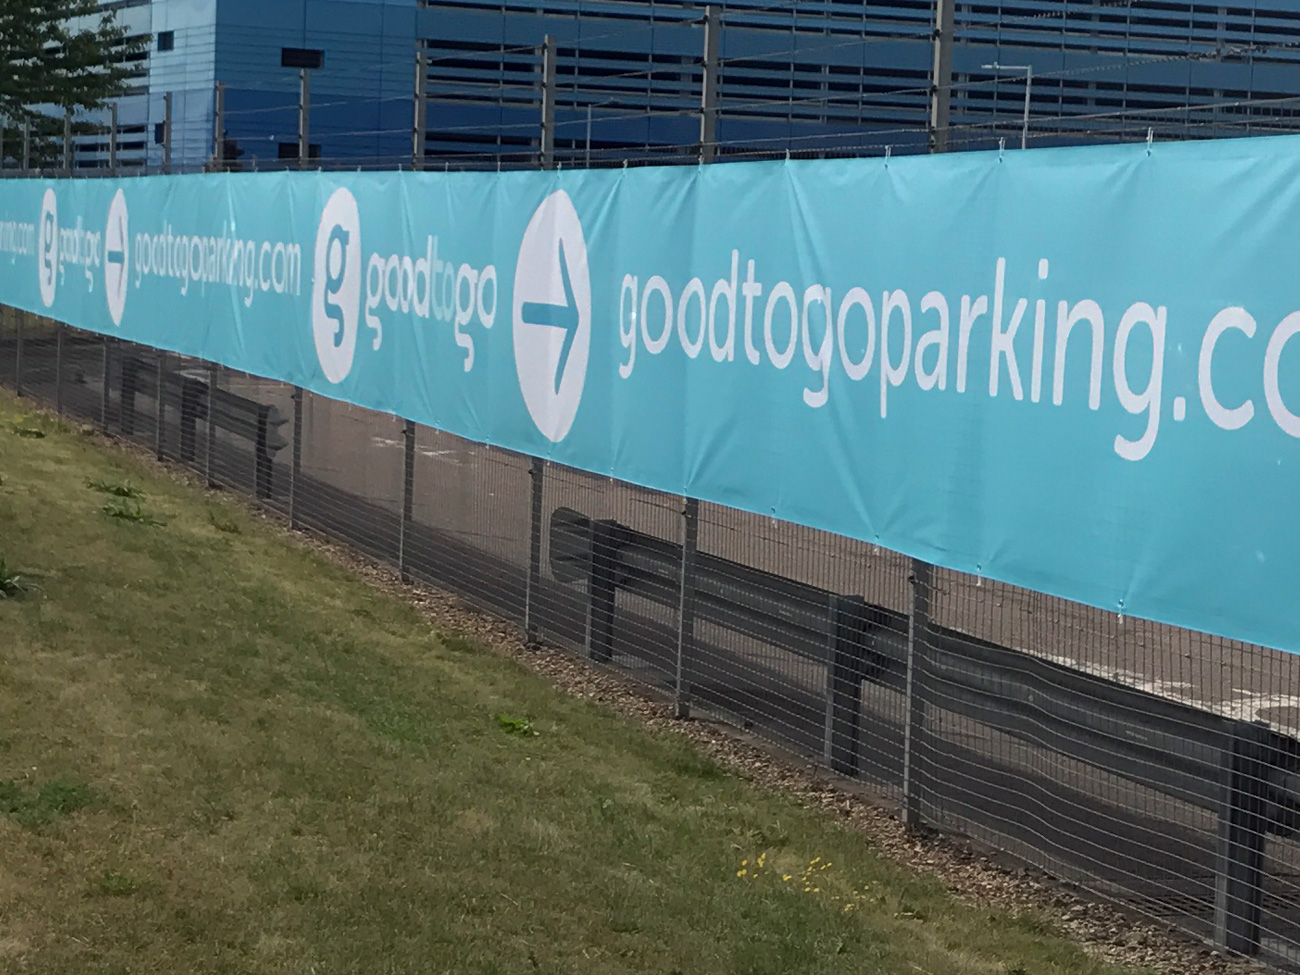 Hethrow good to go parking banner